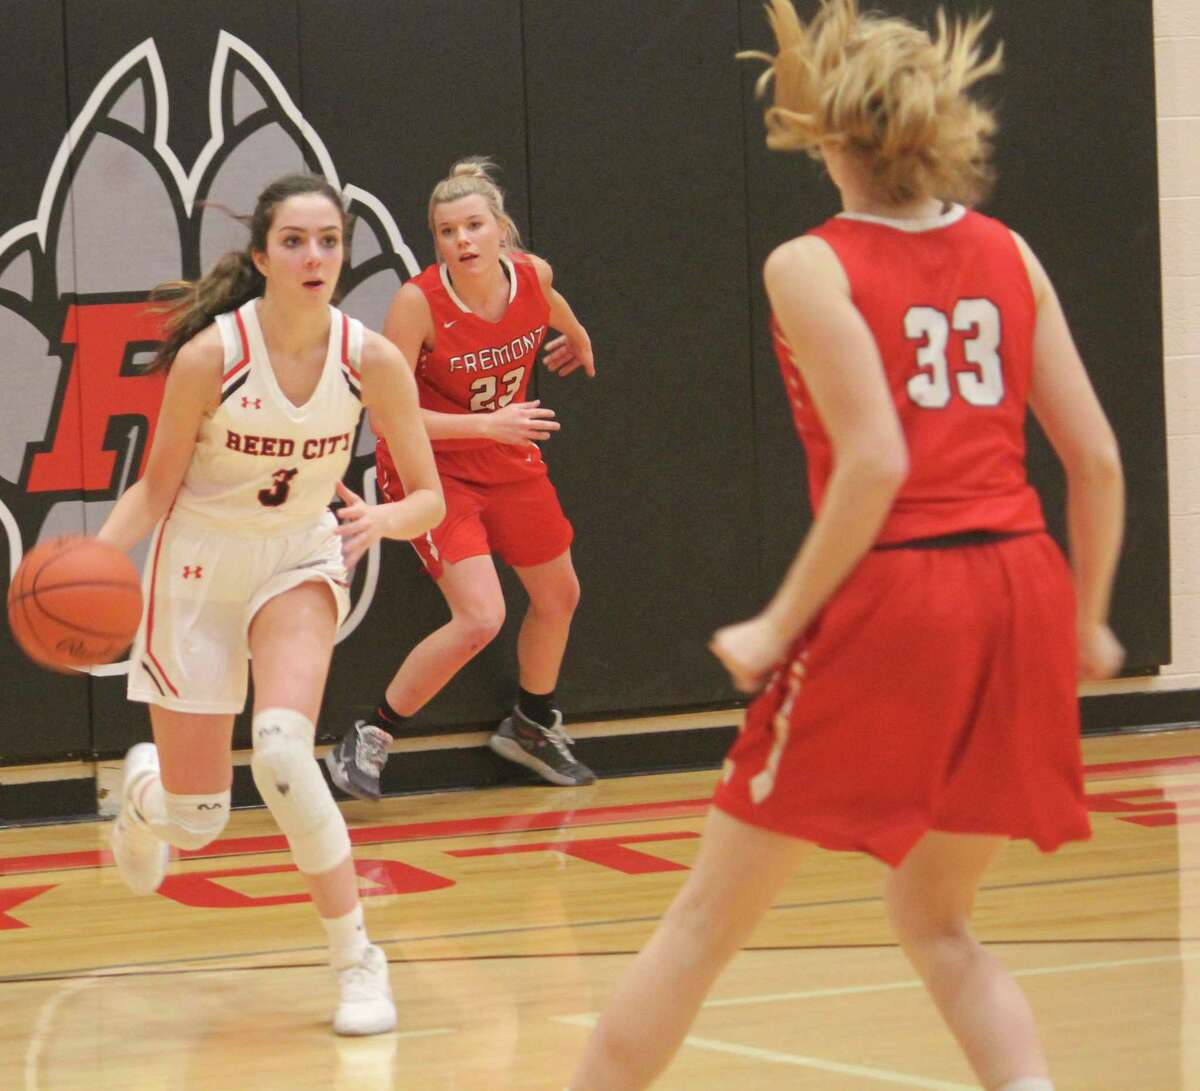 Demi Lodholtz (left) is expected to be among Reed City's top players this season. (Herald Review file photo)